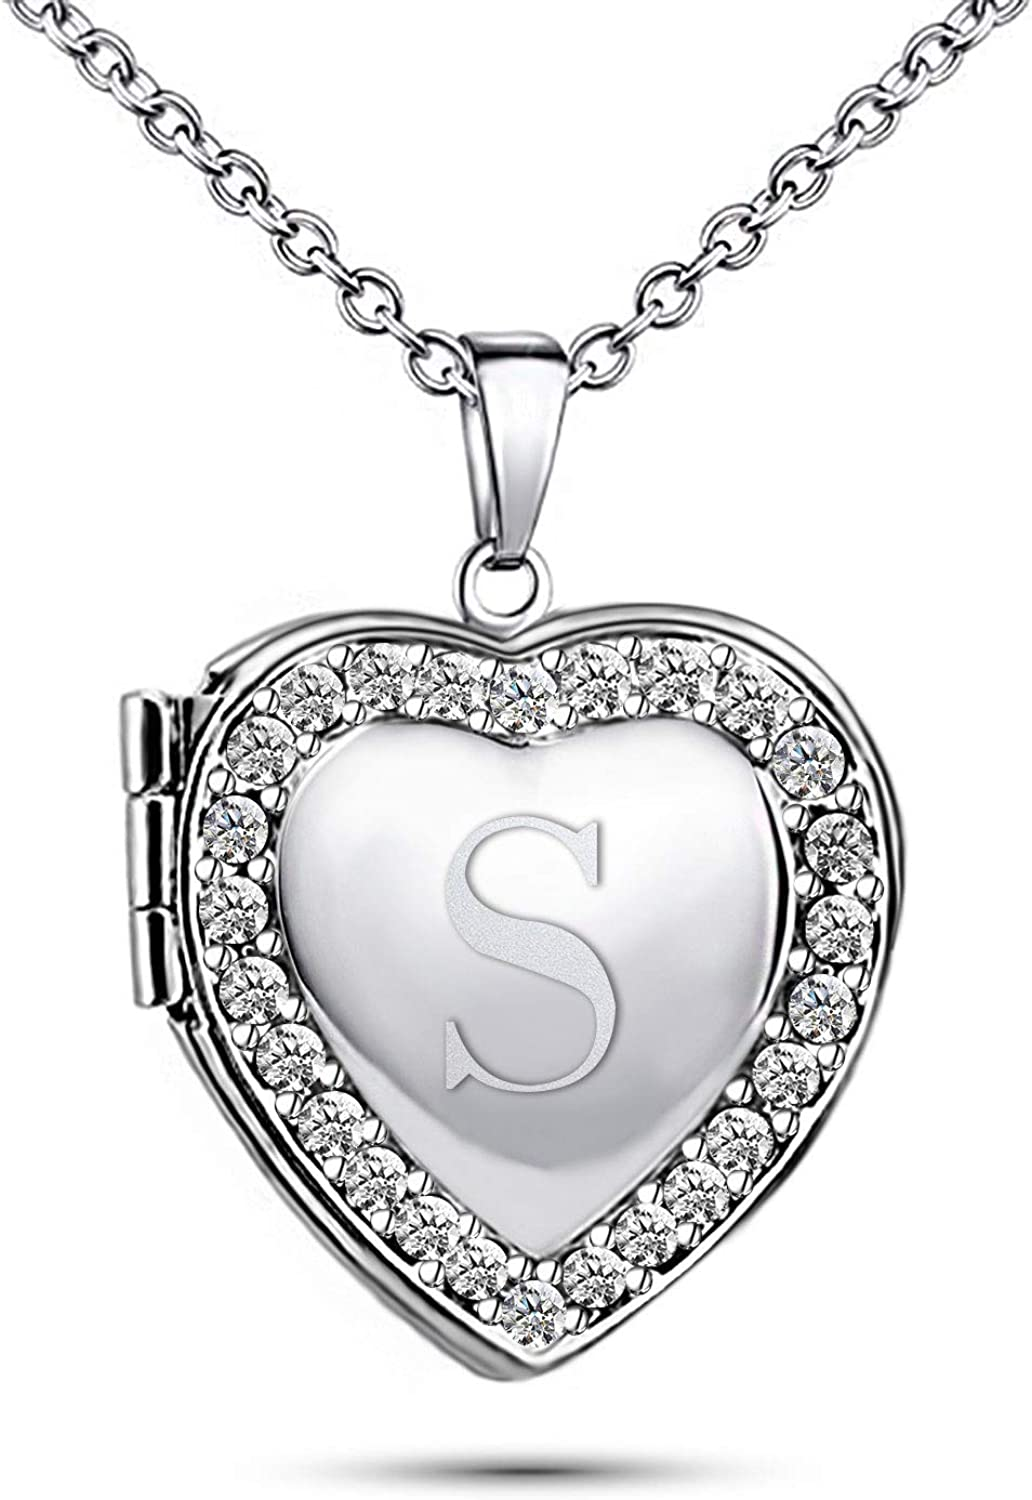 TCHYUN Locket Photo Sale Cheap Alphabet Initial Letter Necklace Pictures Collection Polished Choker Cute Simple Engraved Cursive Bracha Dainty Heart Love Pendant for Girls Womens Mom Men Birthday Gift